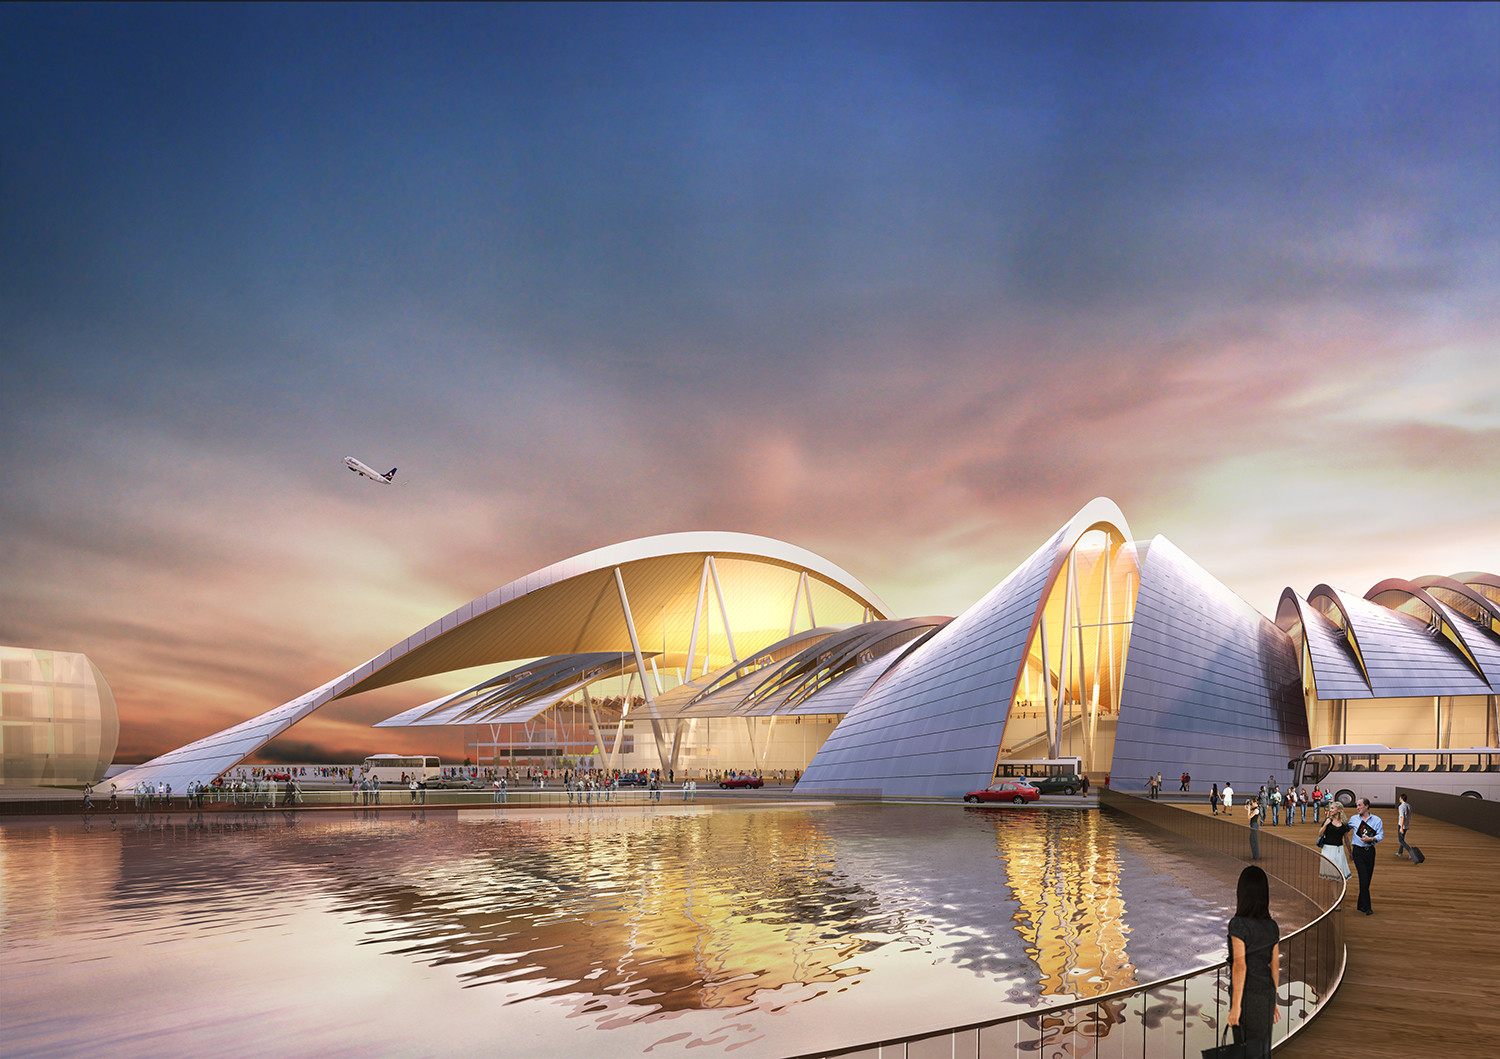 Twelve Architects to Design Airport in Russia for 2018 World Cup, Courtesy of Twelve Architects & Masterplanners